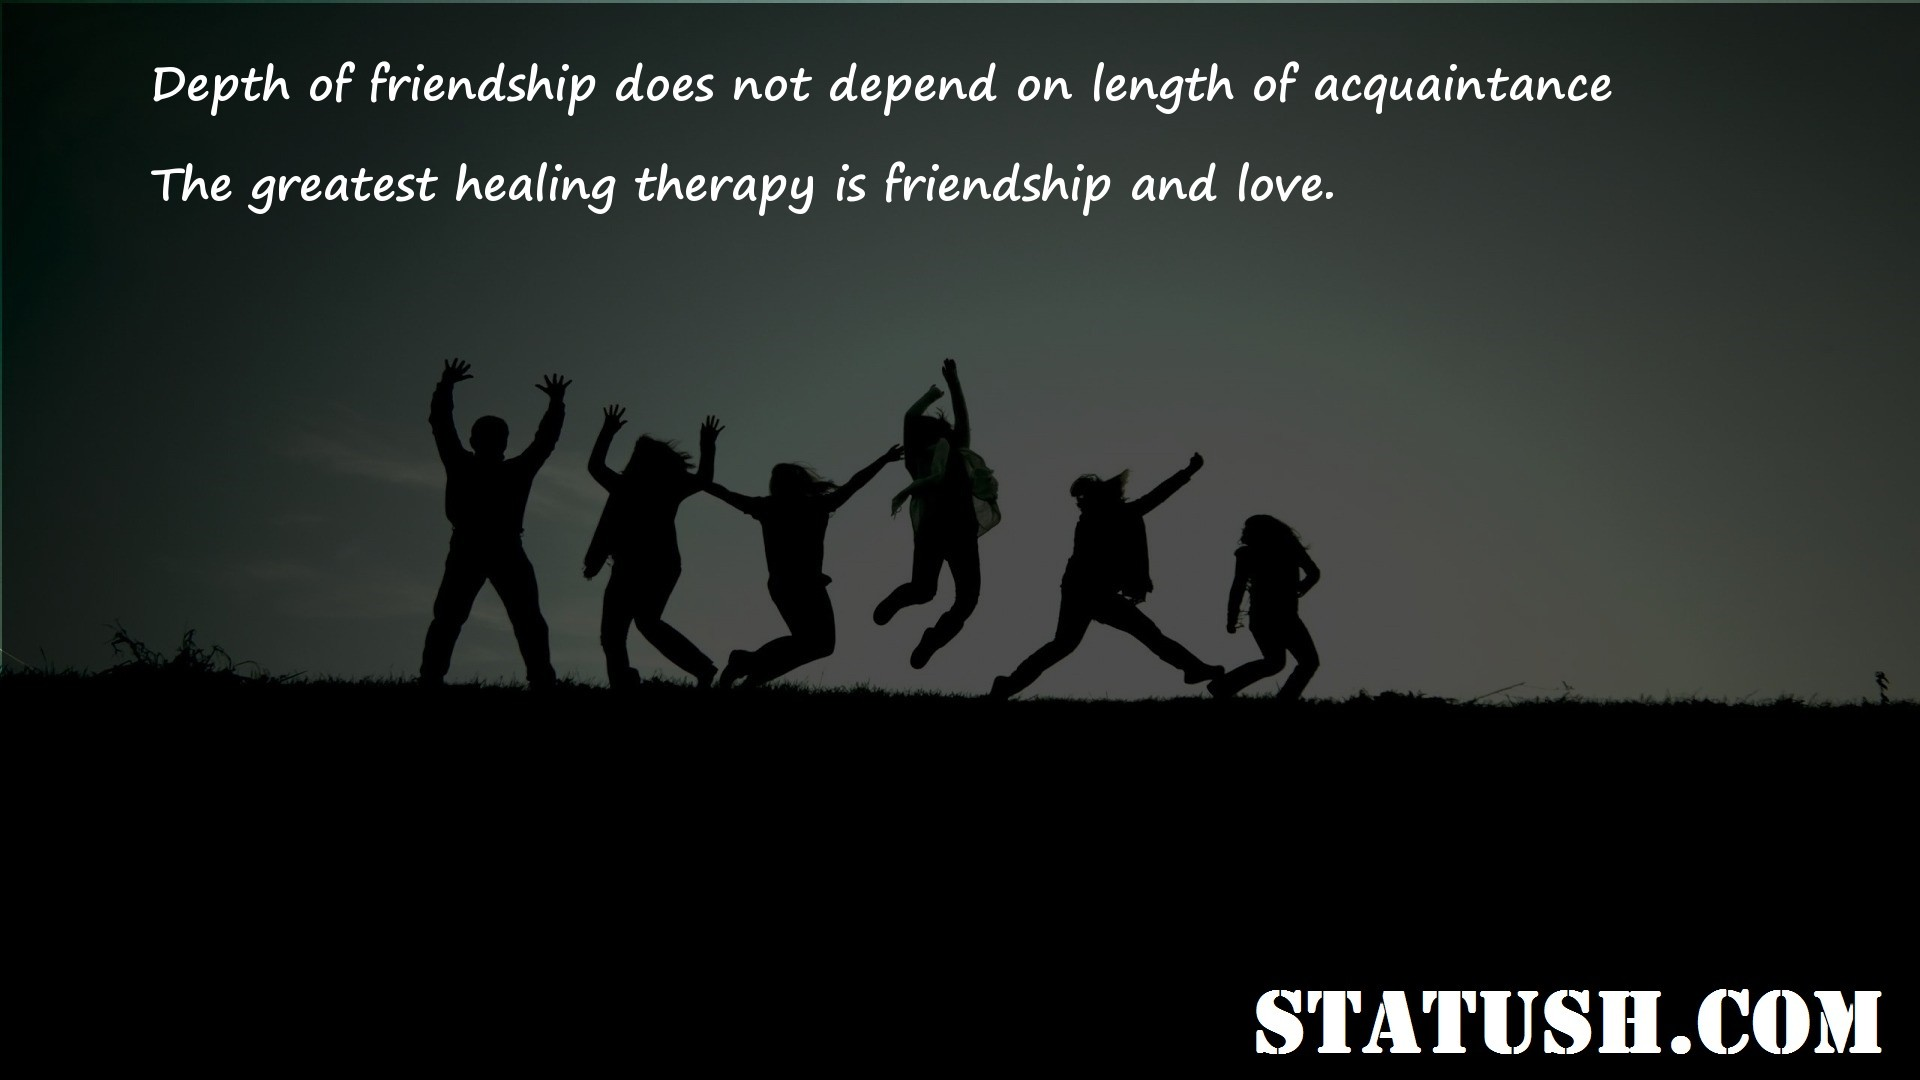 Depth of friendship does not depend on length of acquaintance